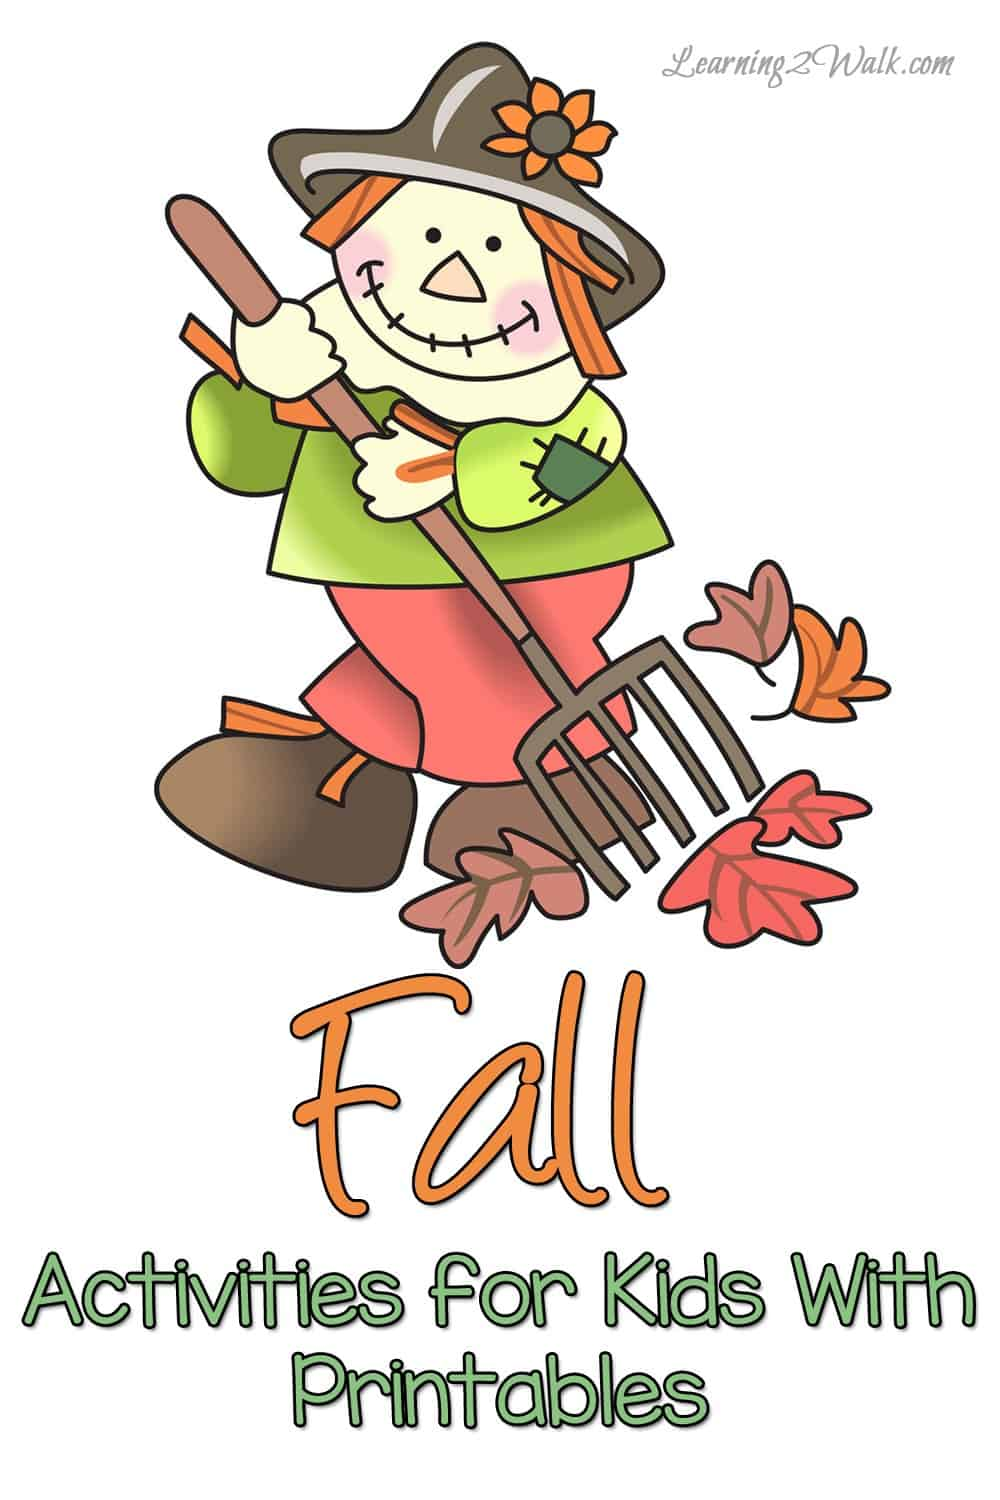 Looking for a few fall activities for kids with printables? Why not start with these?